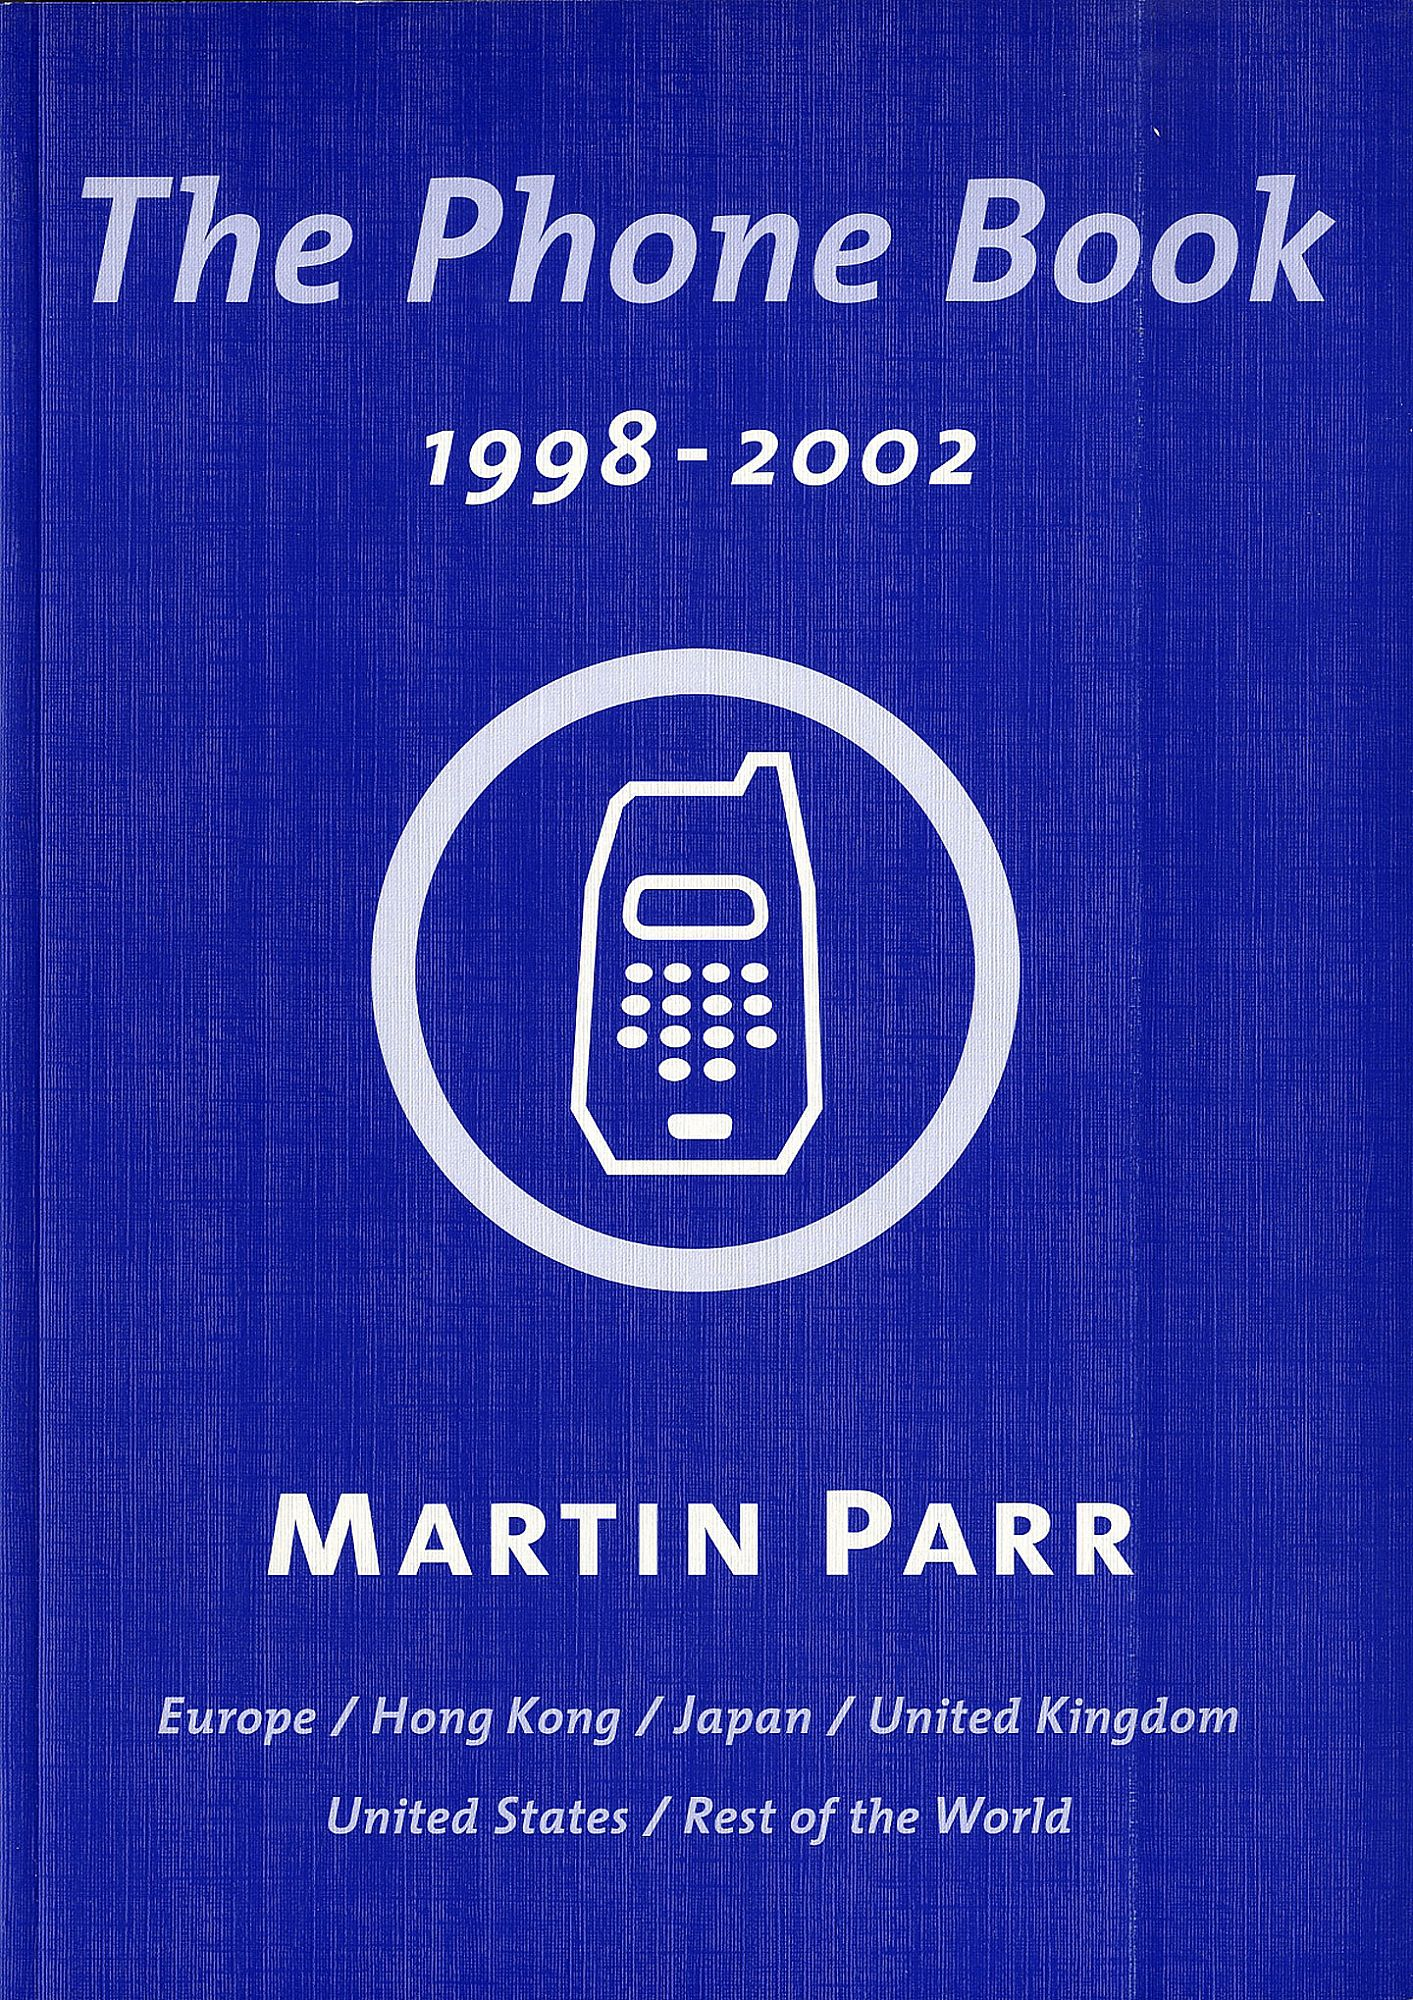 Martin Parr: The Phone Book 1998-2002, Limited Edition (Blue Cover Variant) [SIGNED]